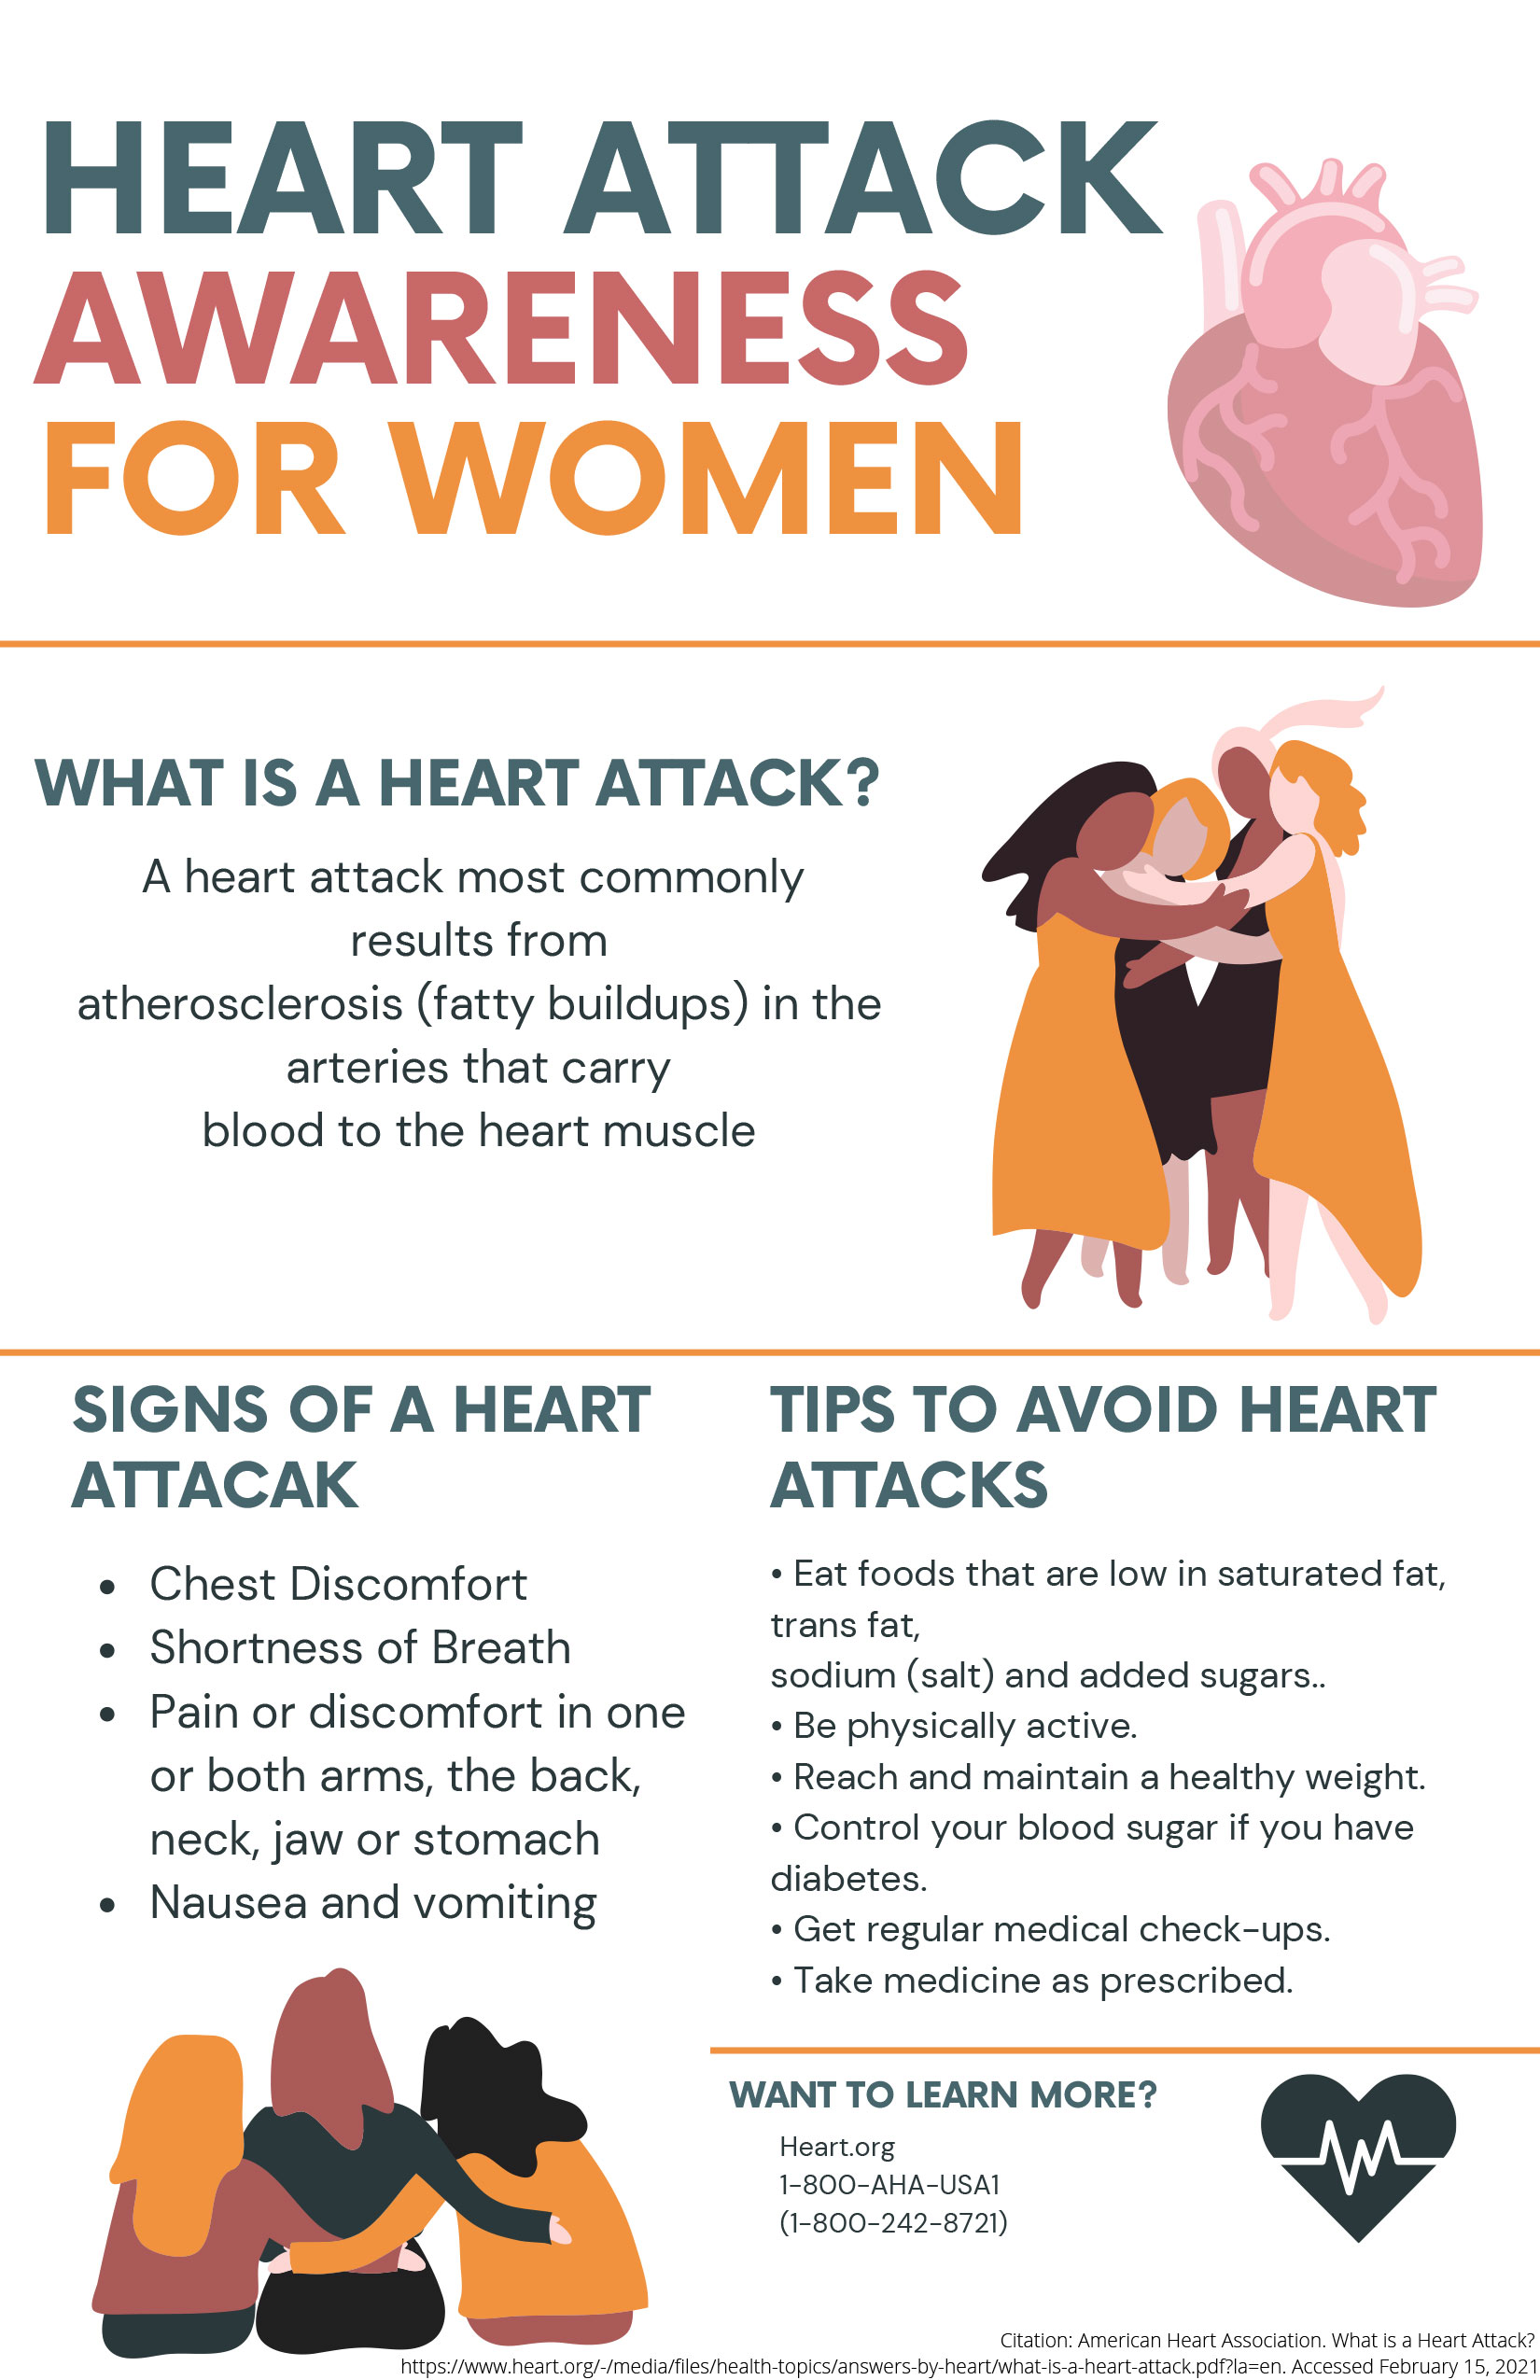 image of Hearth Attack Awareness for Women flyer